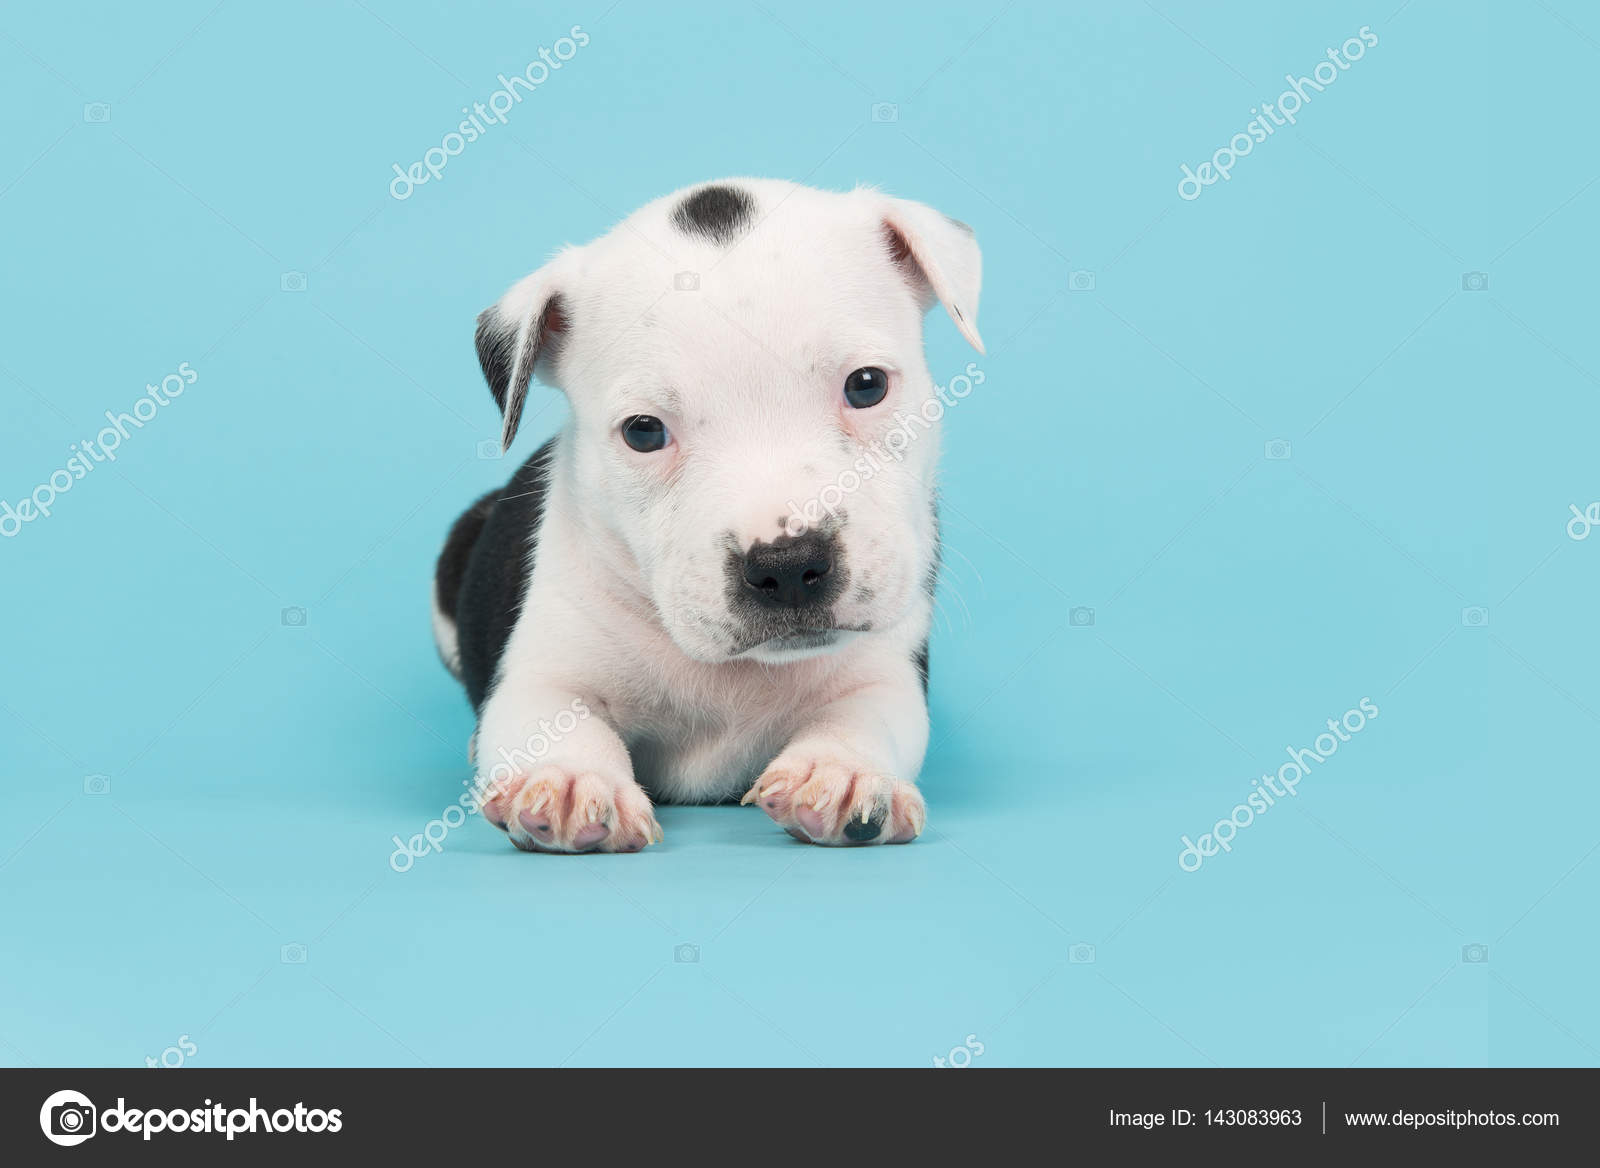 Cute Baby Stafford Terrier Dog On A Blue Background Stock Photo